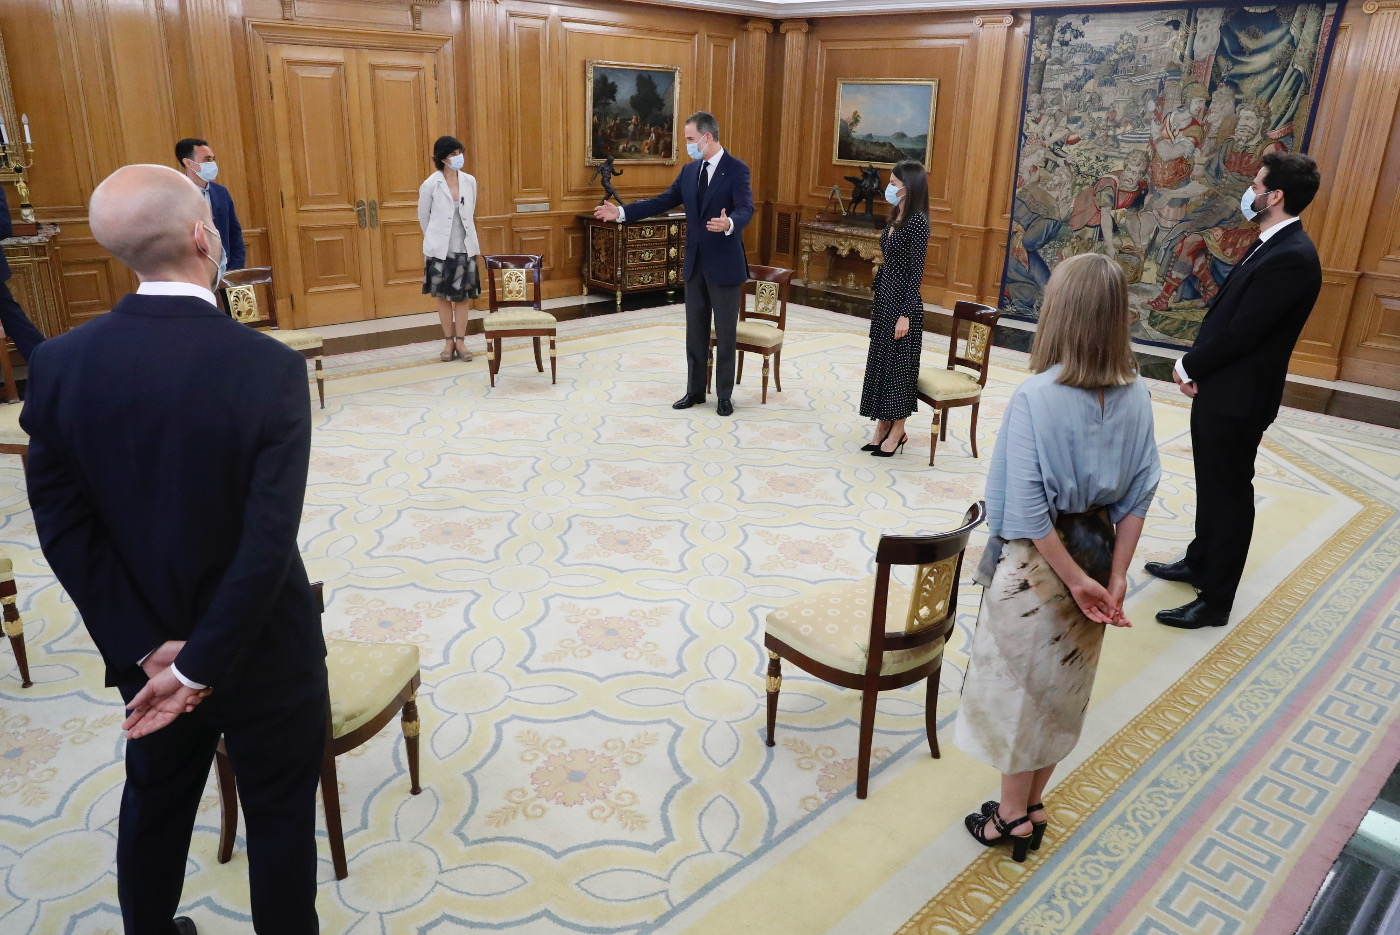 King Felipe and Queen Letizia welcomed young innovators at the Palace